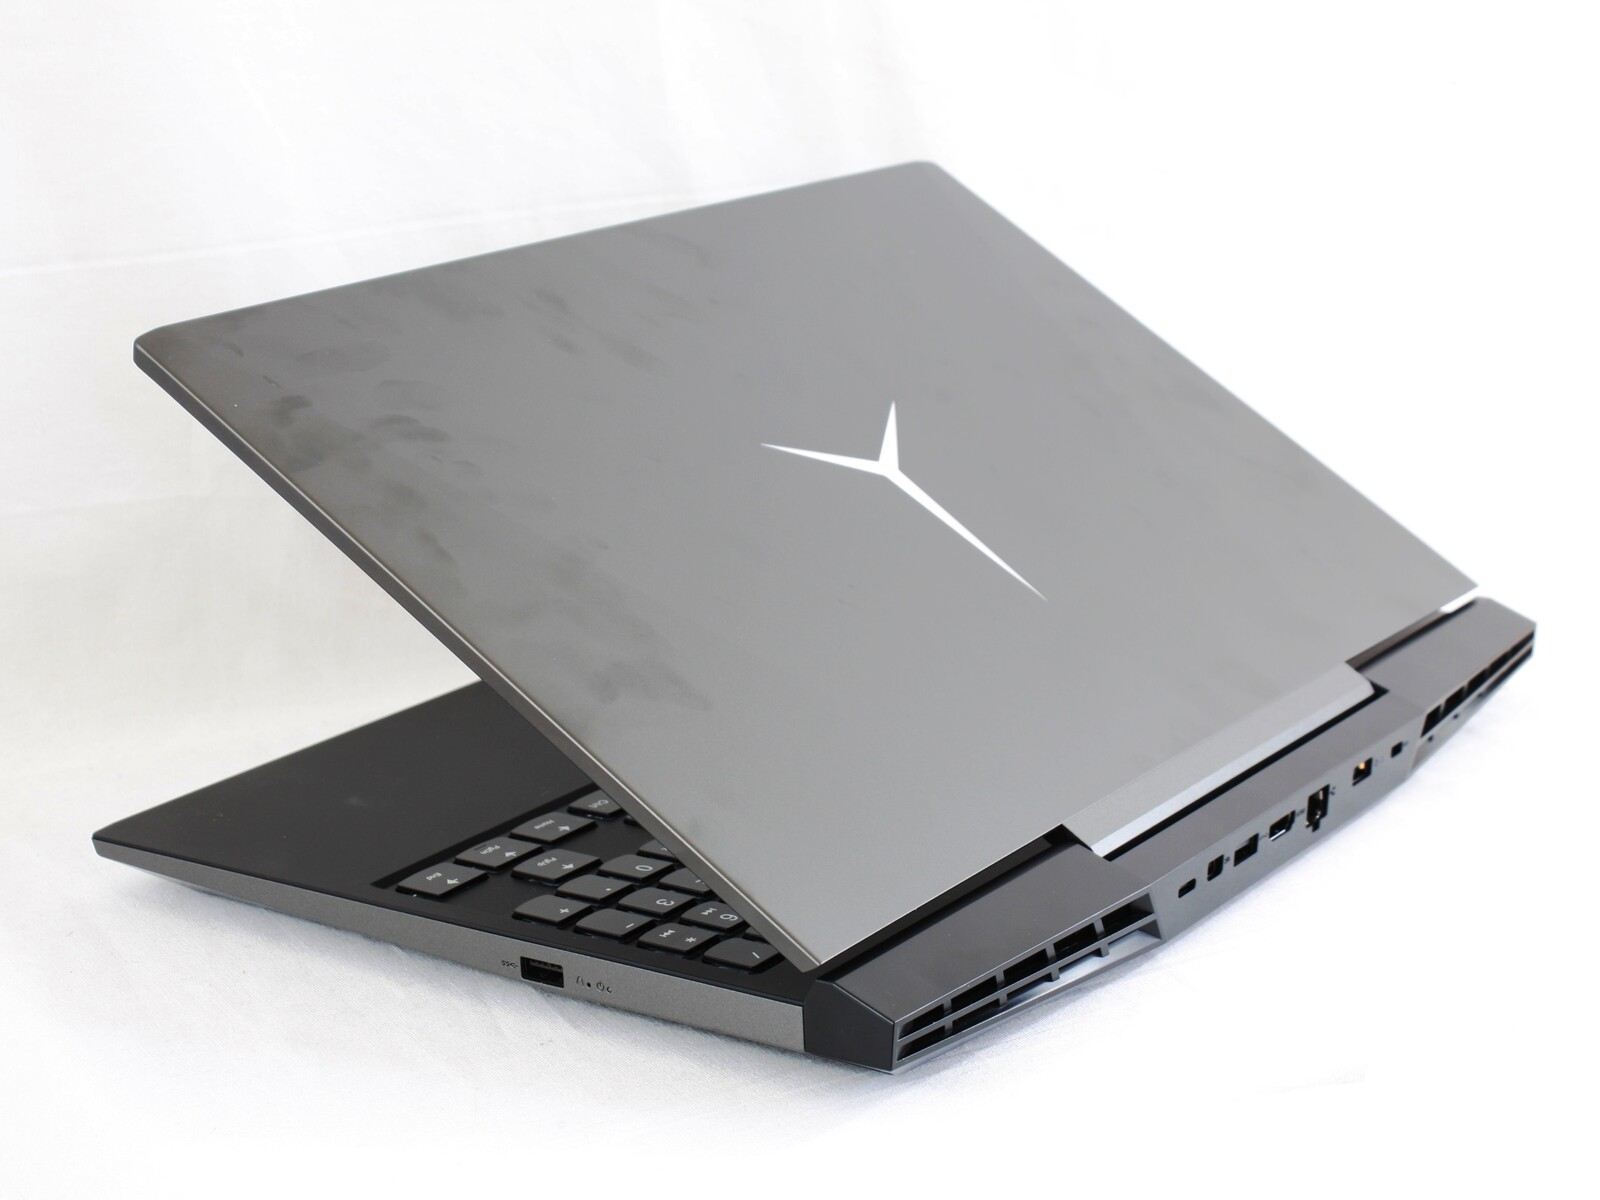 Lenovo Legion Y7000P-1060 - Notebookcheck.net External Reviews